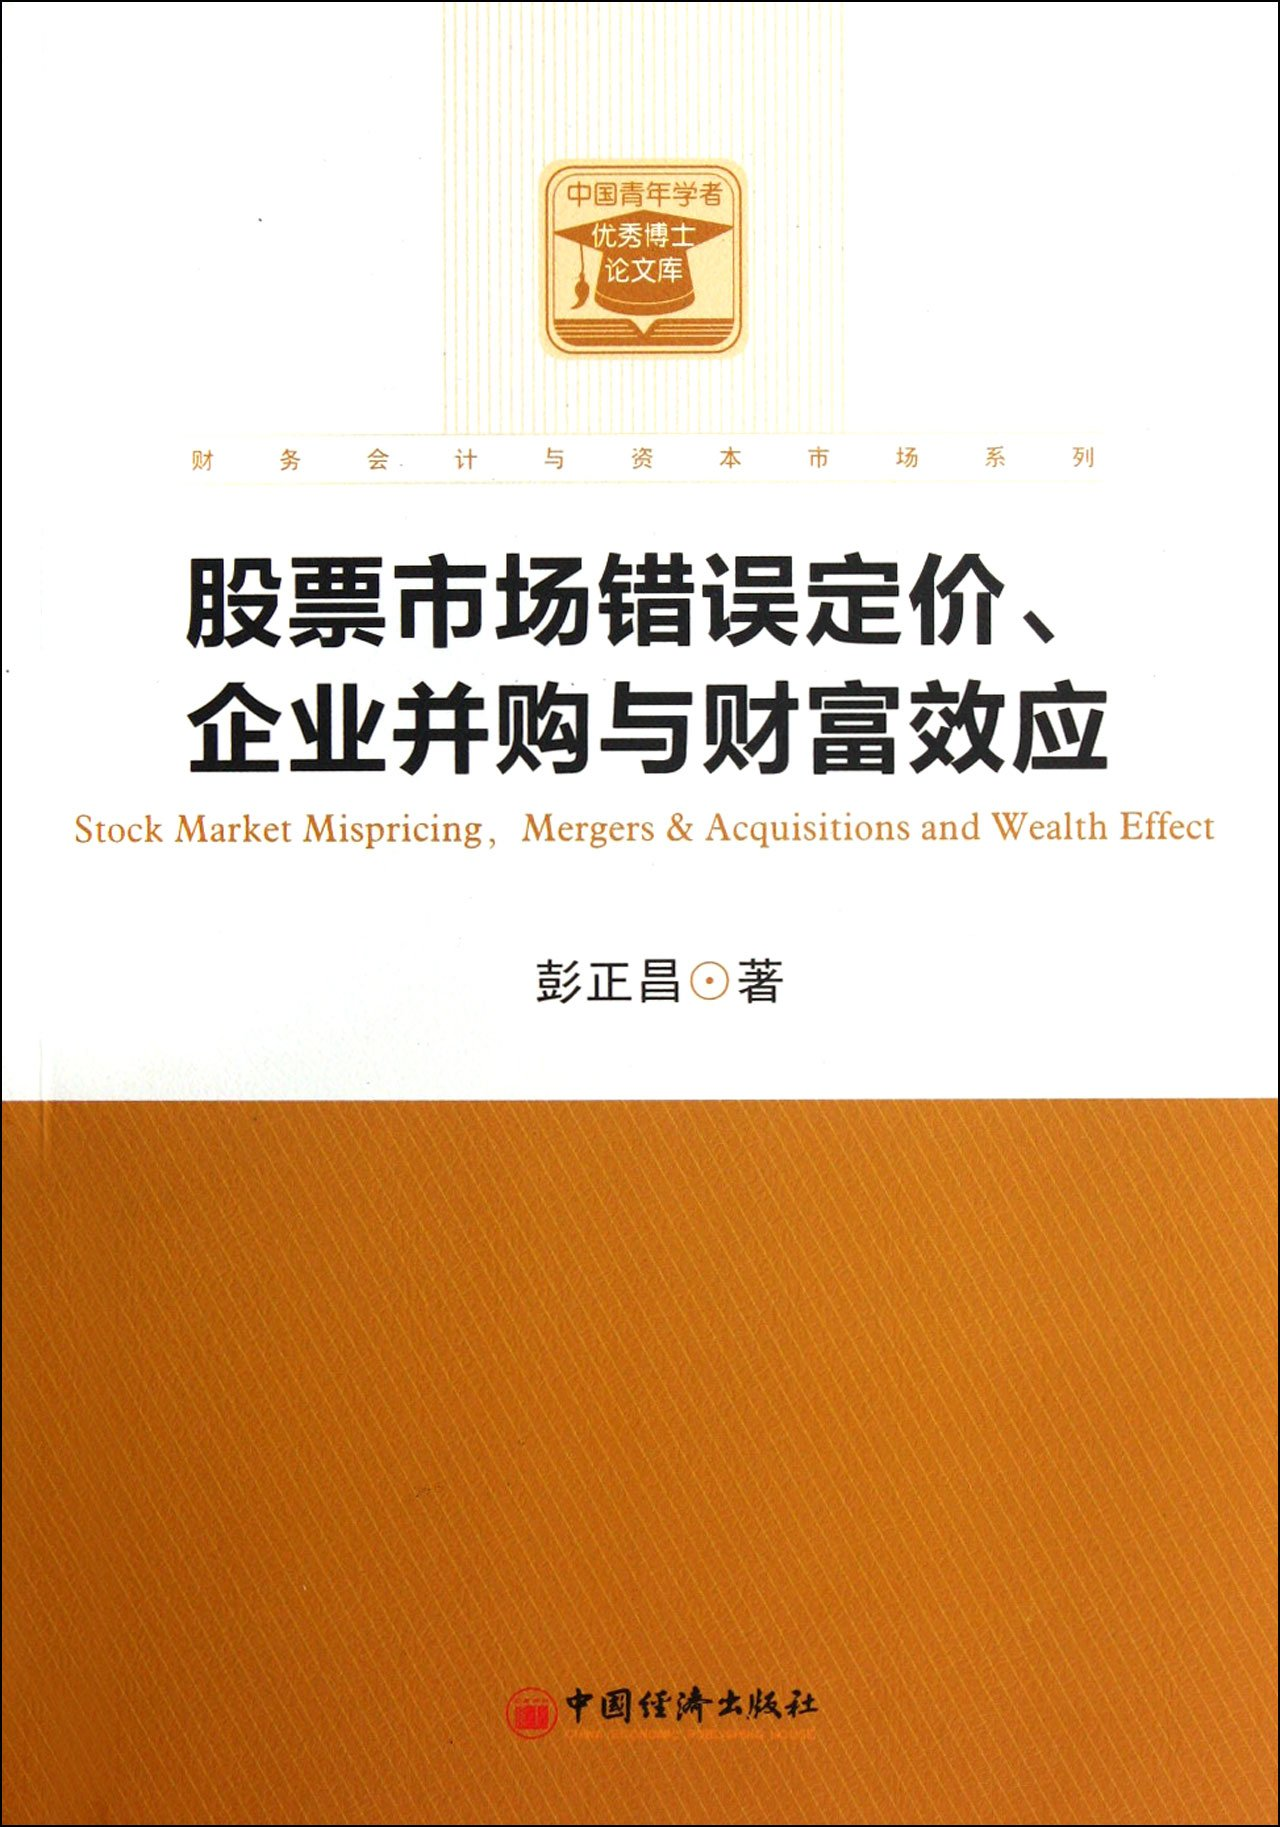 Mispriced Stock Market-Mergers and Acquisitions & The Wealth Effect (Chinese Edition) PDF